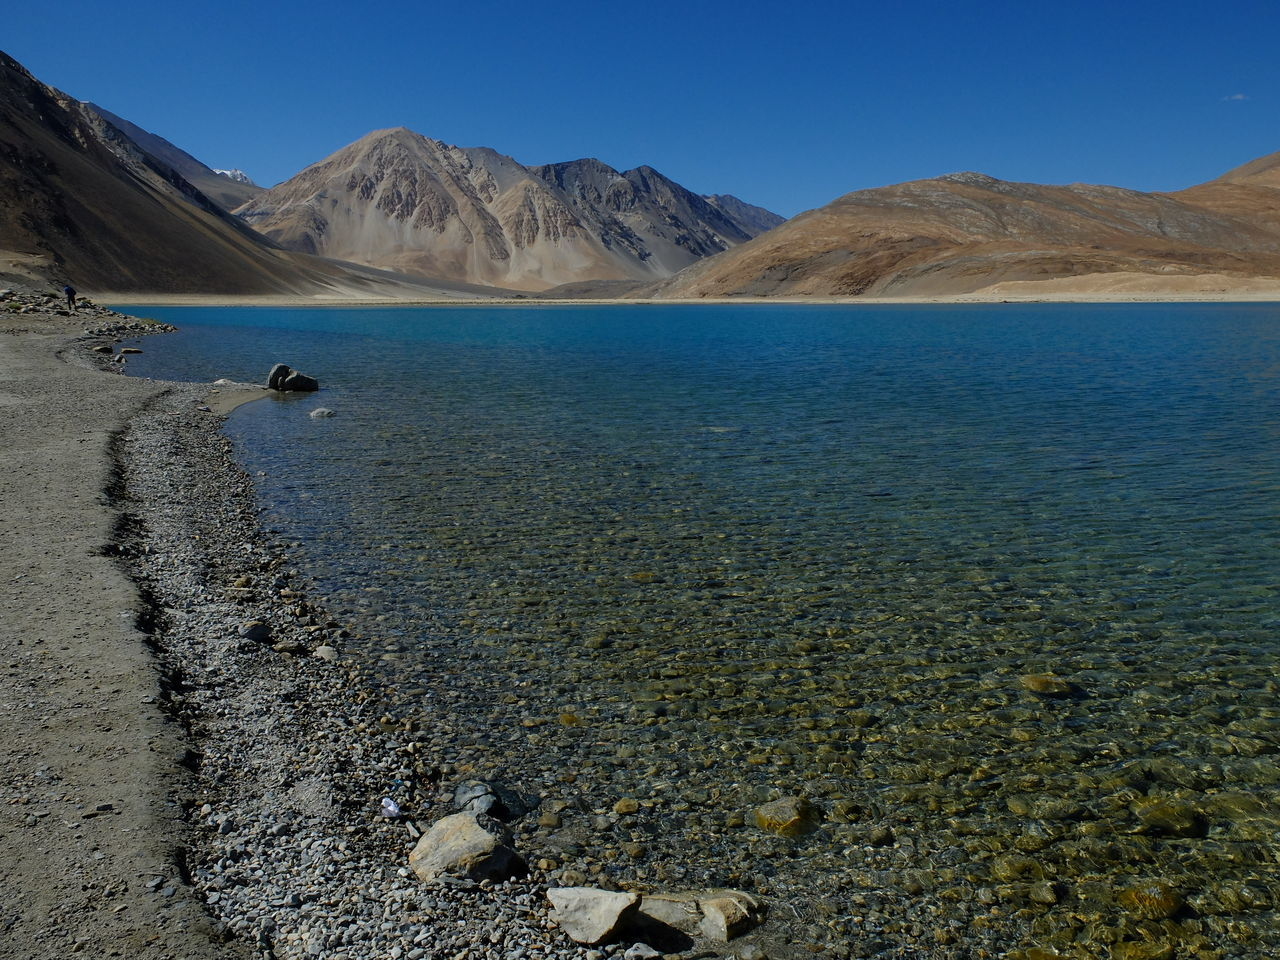 Beauty In Nature Blue Clear Sky Day Jammu And Kashmir Landscape Leh Ladakh Mountain Nature No People Outdoors Pangong Lake Pangong Tso Scenics Sky Tranquil Scene Tranquility